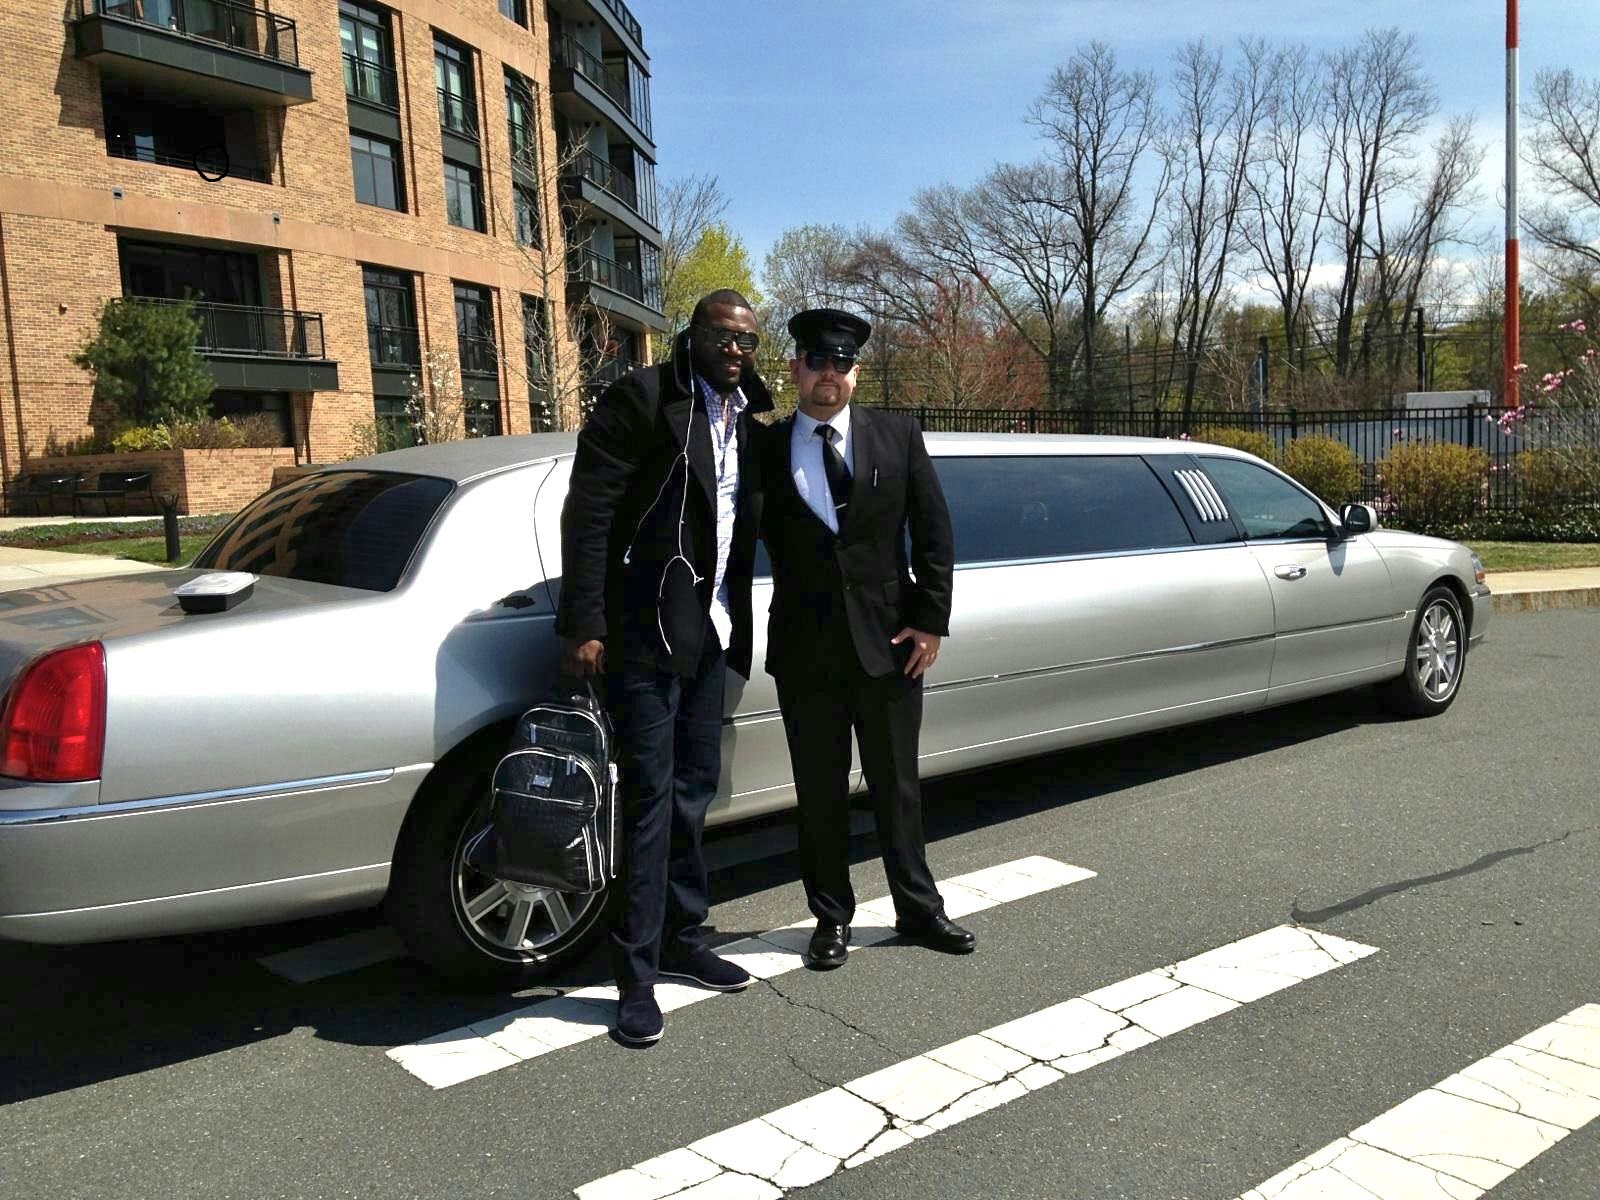 Limos for Rent Nashua NH 03060